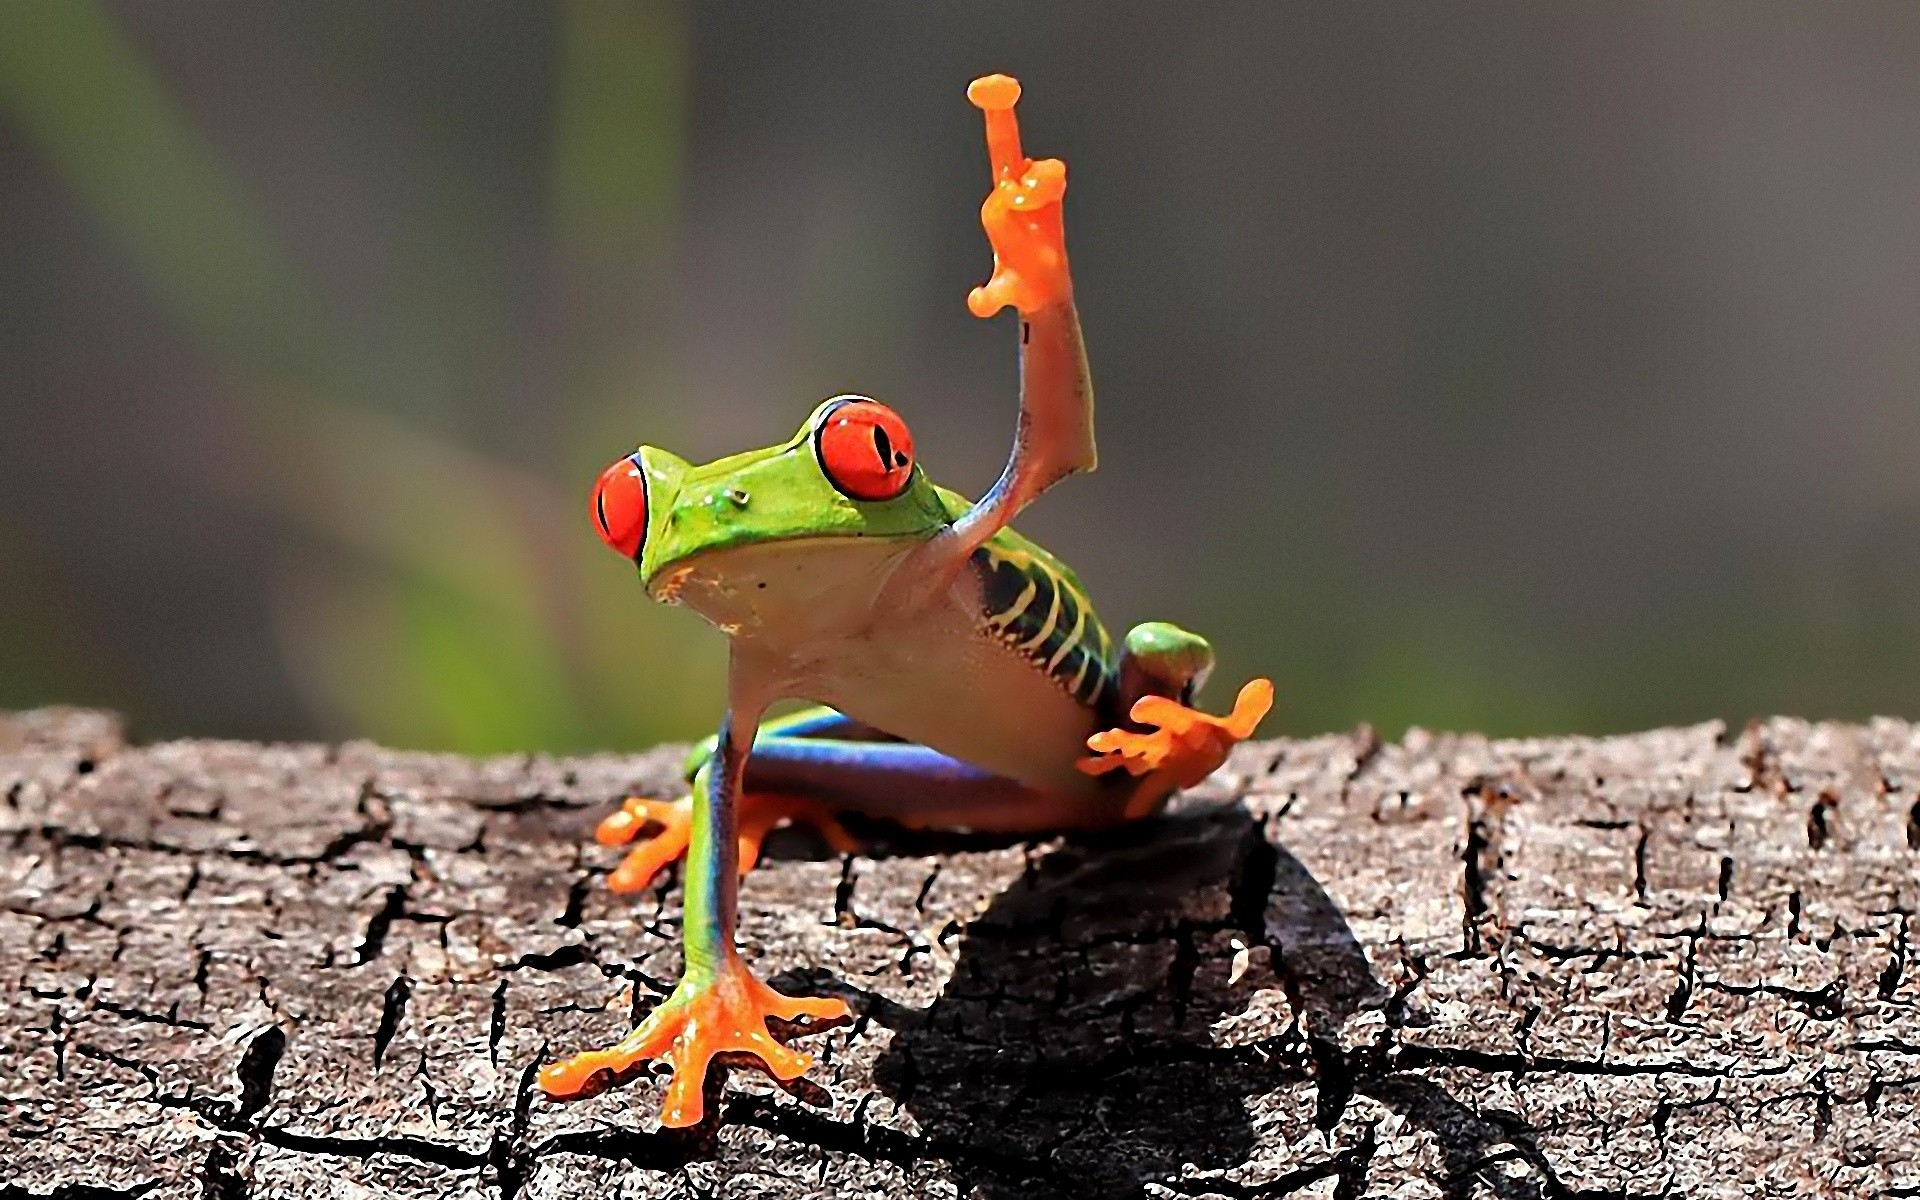 Animal - Frog  Humor Funny Cute Wallpaper